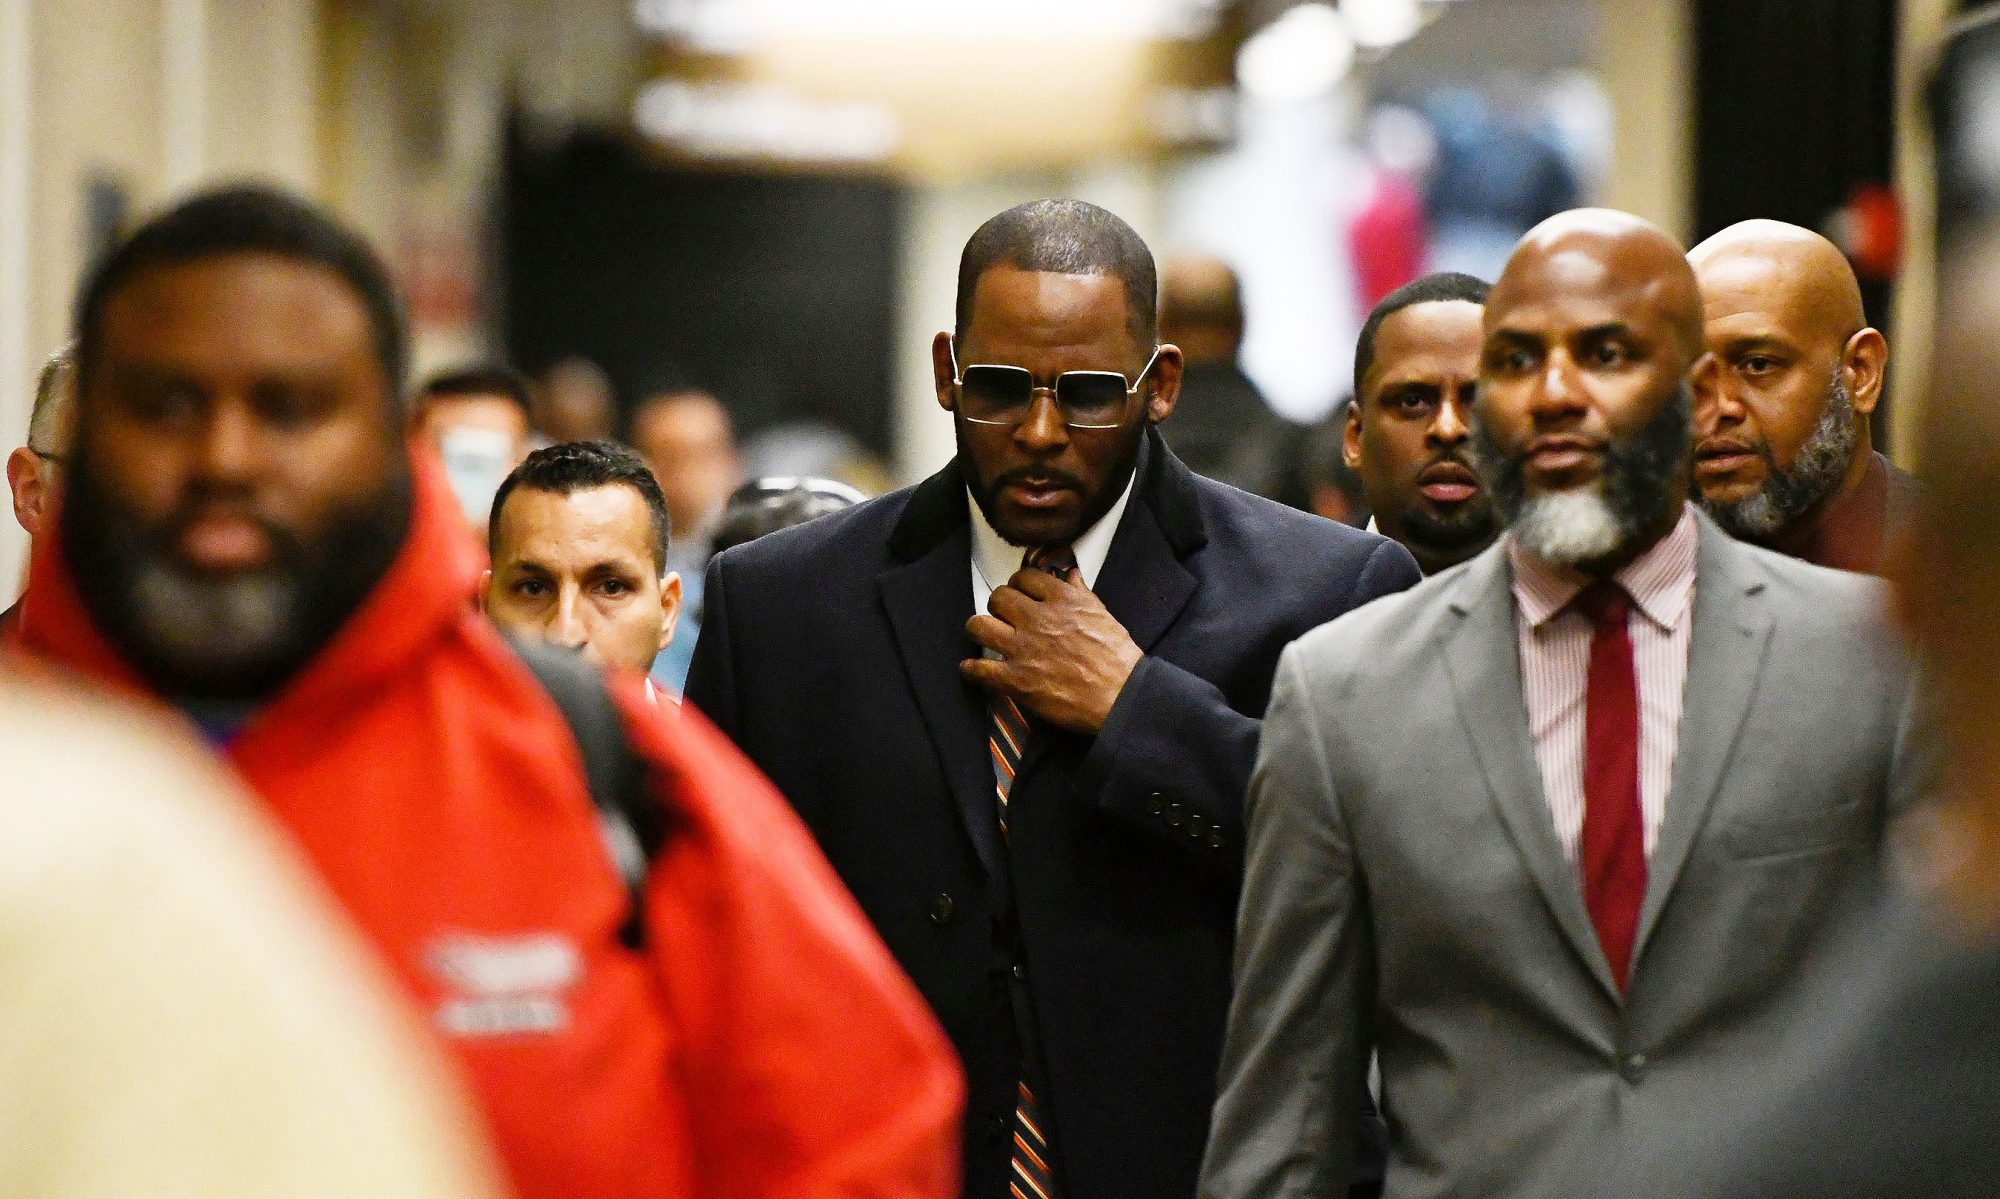 Musician R. Kelly arrives at the Daley Center for a hearing in his child support case, in Chicago R Kelly Investigation, Chicago, USA - 08 May 2019